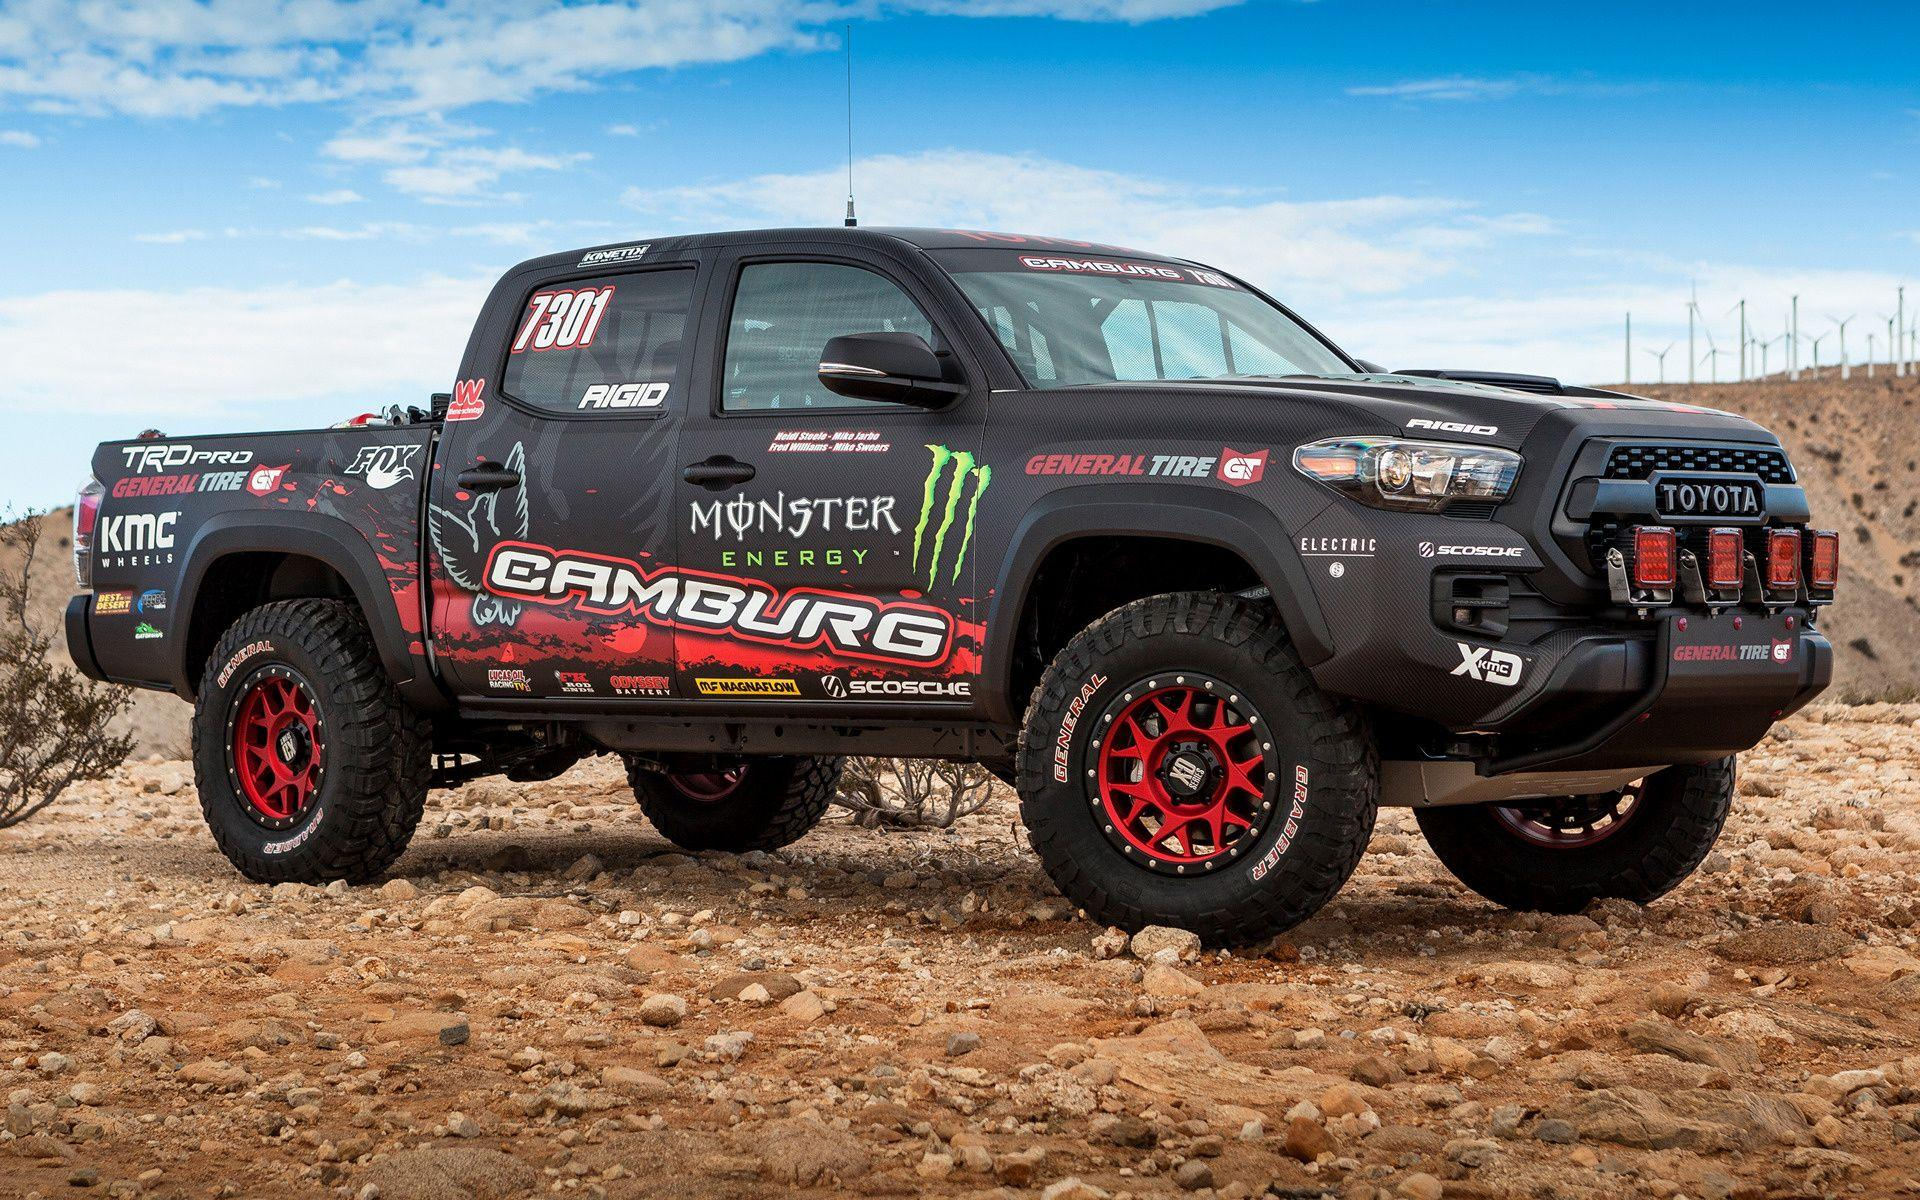 Toyota Tacoma TRD Pro Race Truck (2016) Wallpapers and HD Images ...